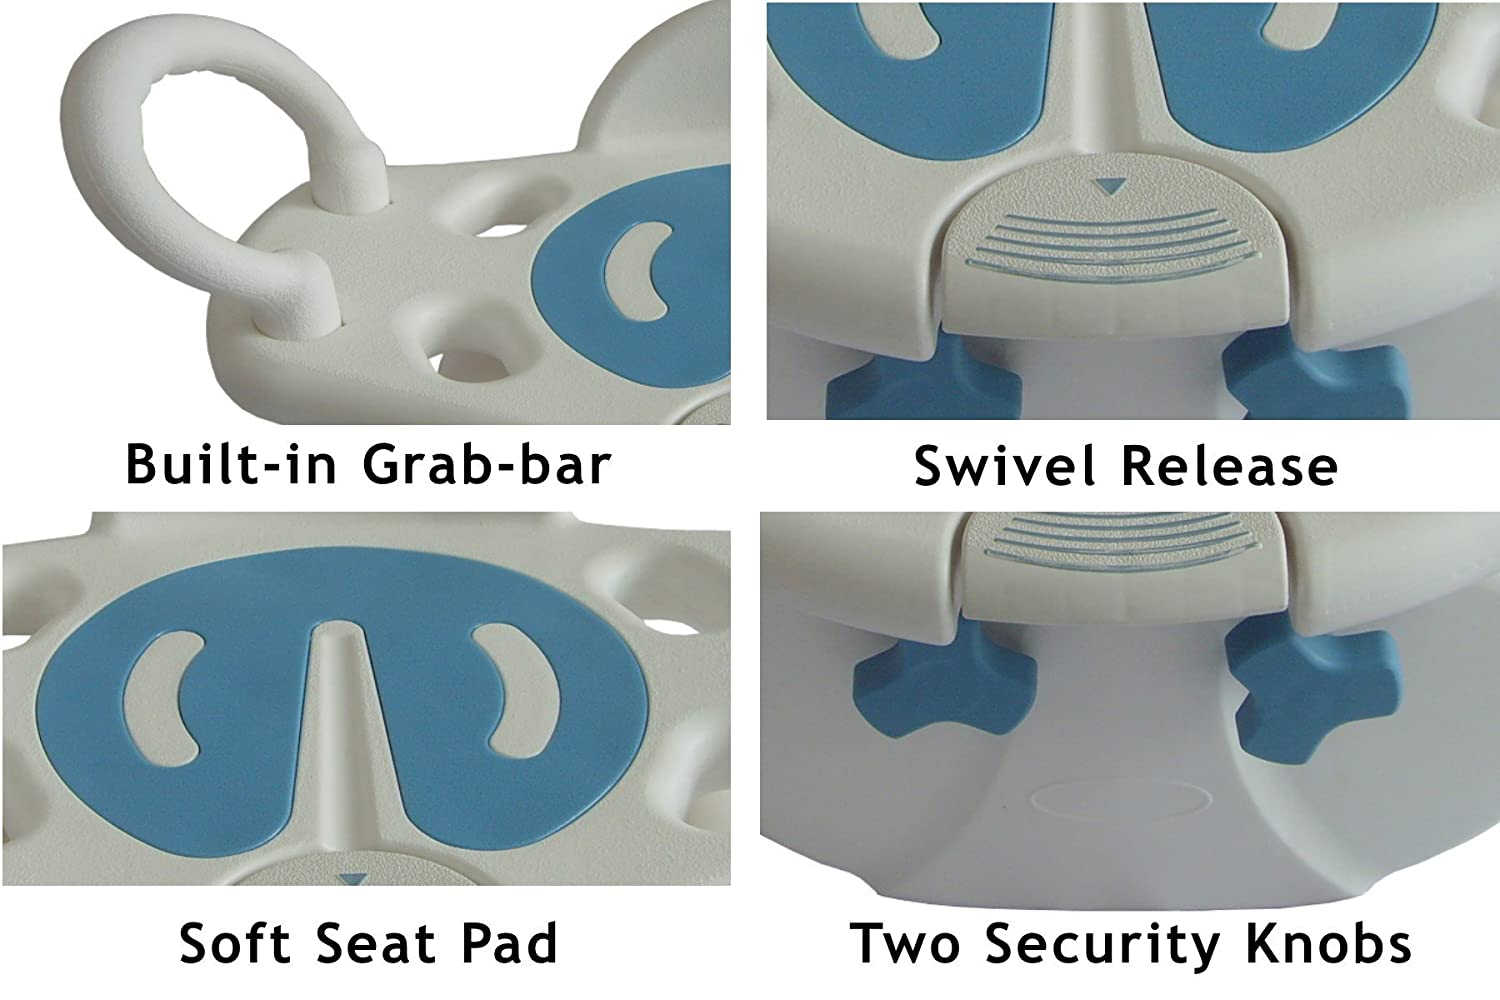 Amazon.com: Tub-Mounted Swivel Bath Seat, Elderly Safety Transfer ...